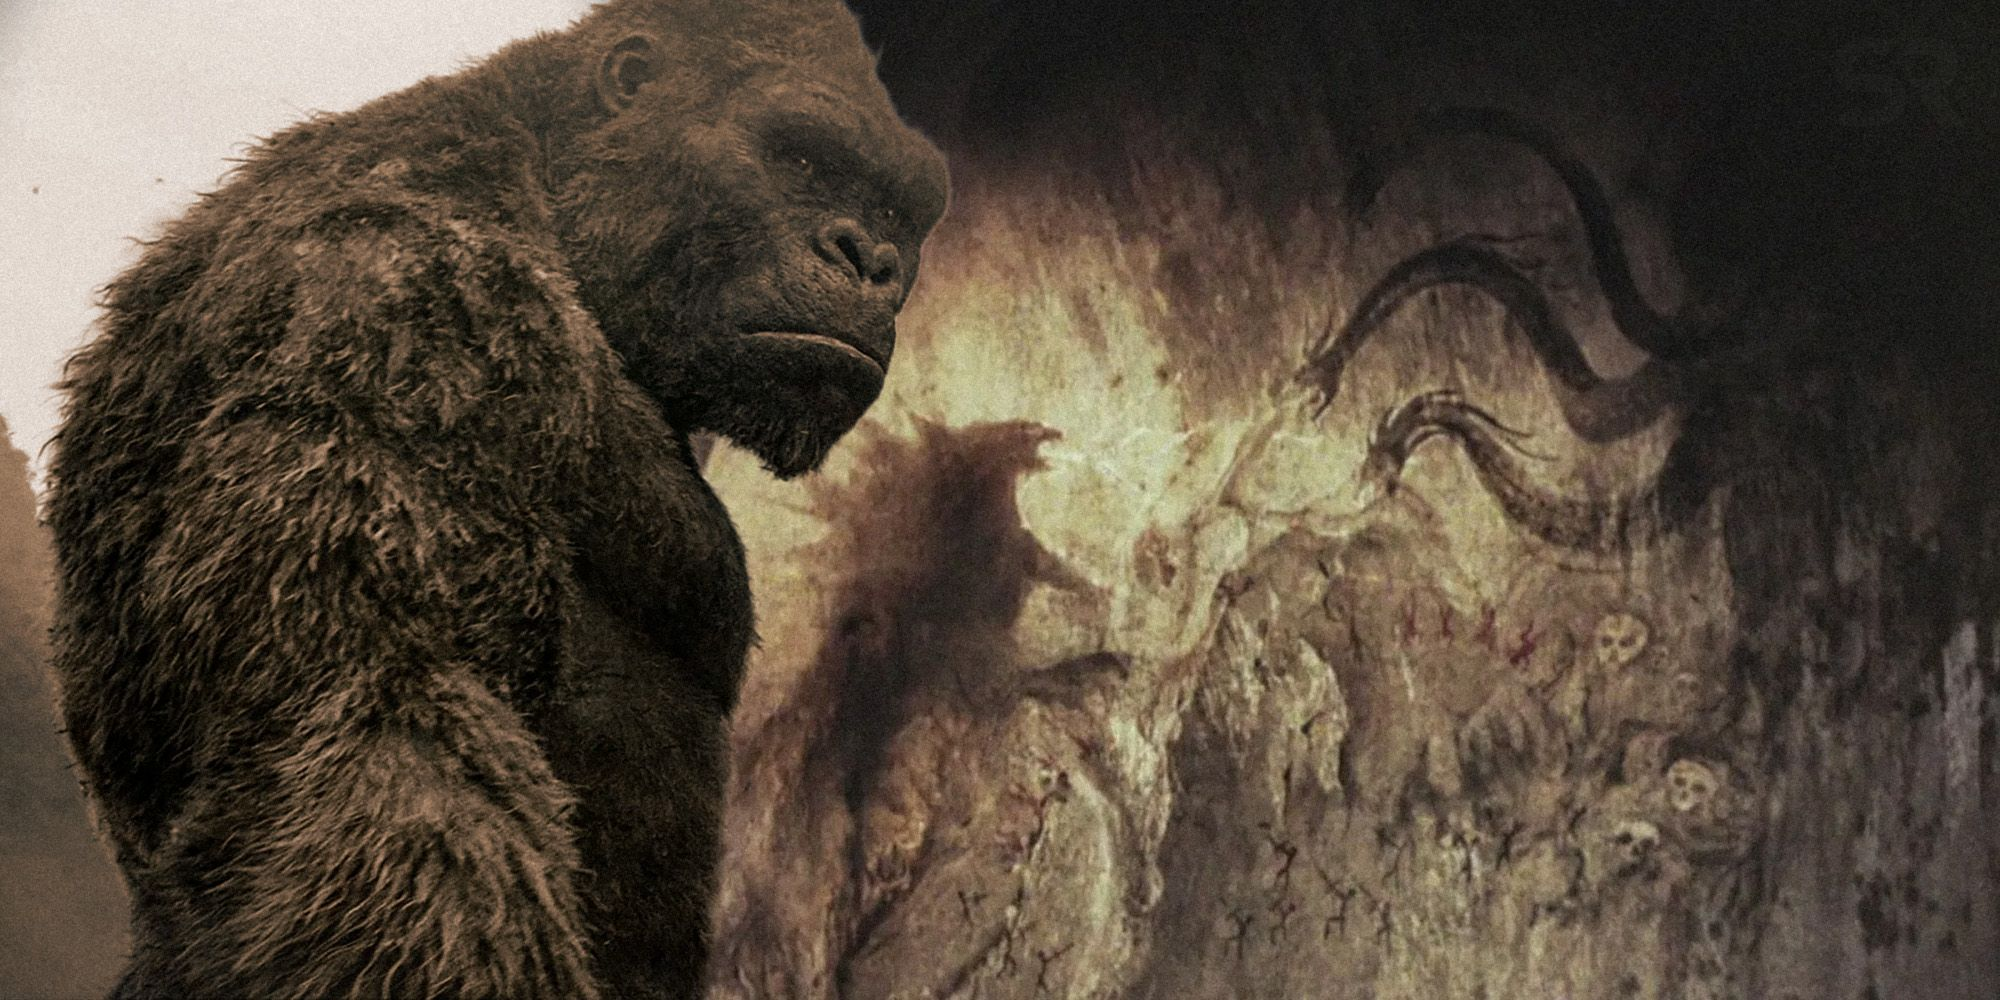 Godzilla vs Kong's Ancient Titan War & Myths Explained